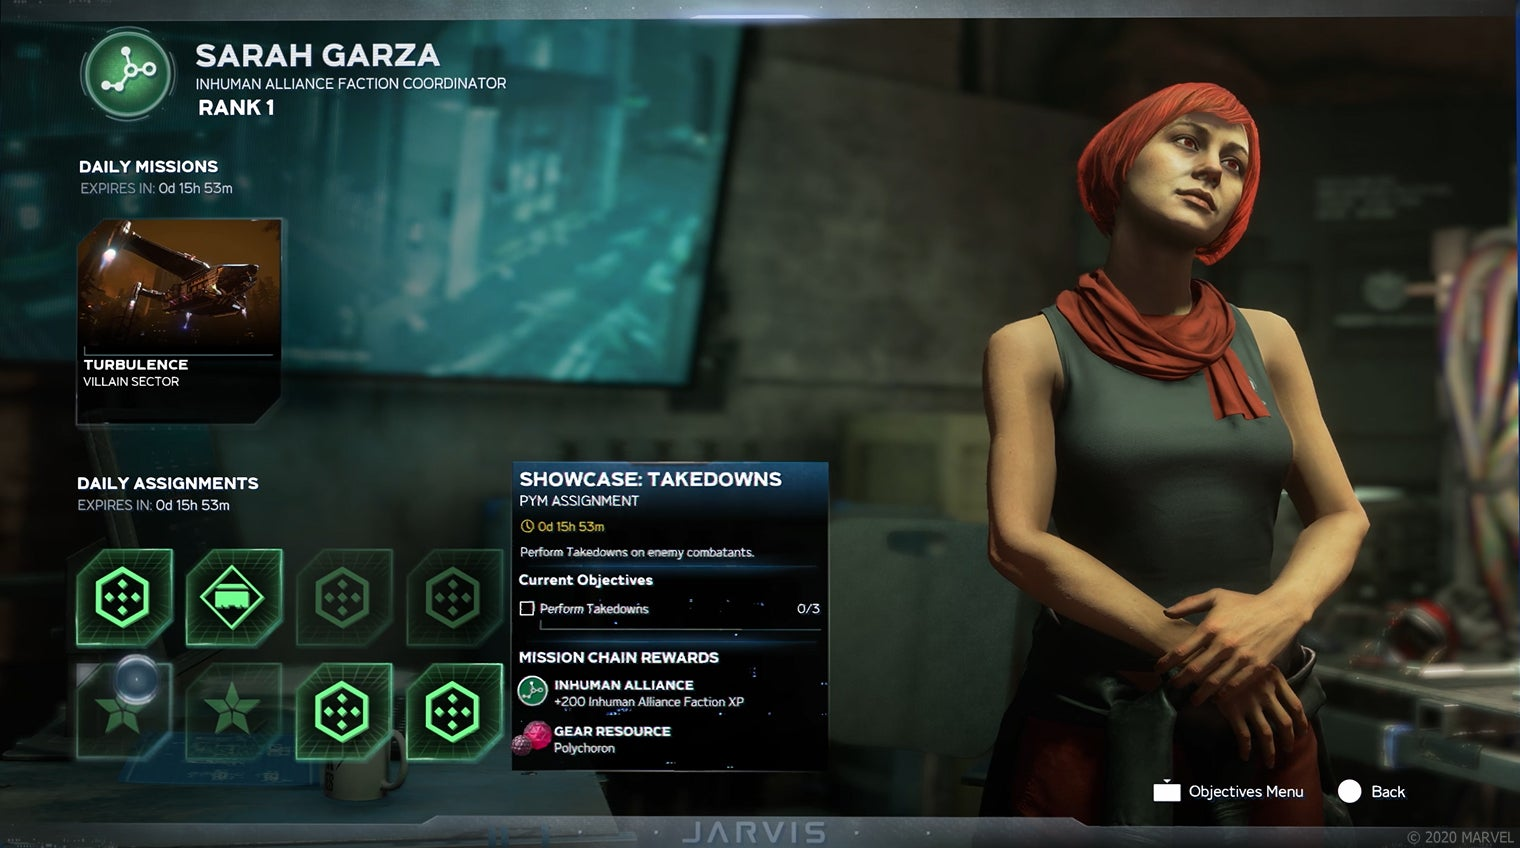 Marvel's Avengers weekly gameplay loop showing daily missions, daily assortments & Inhuman Alliance Faction Cordinator: Sarah Garza